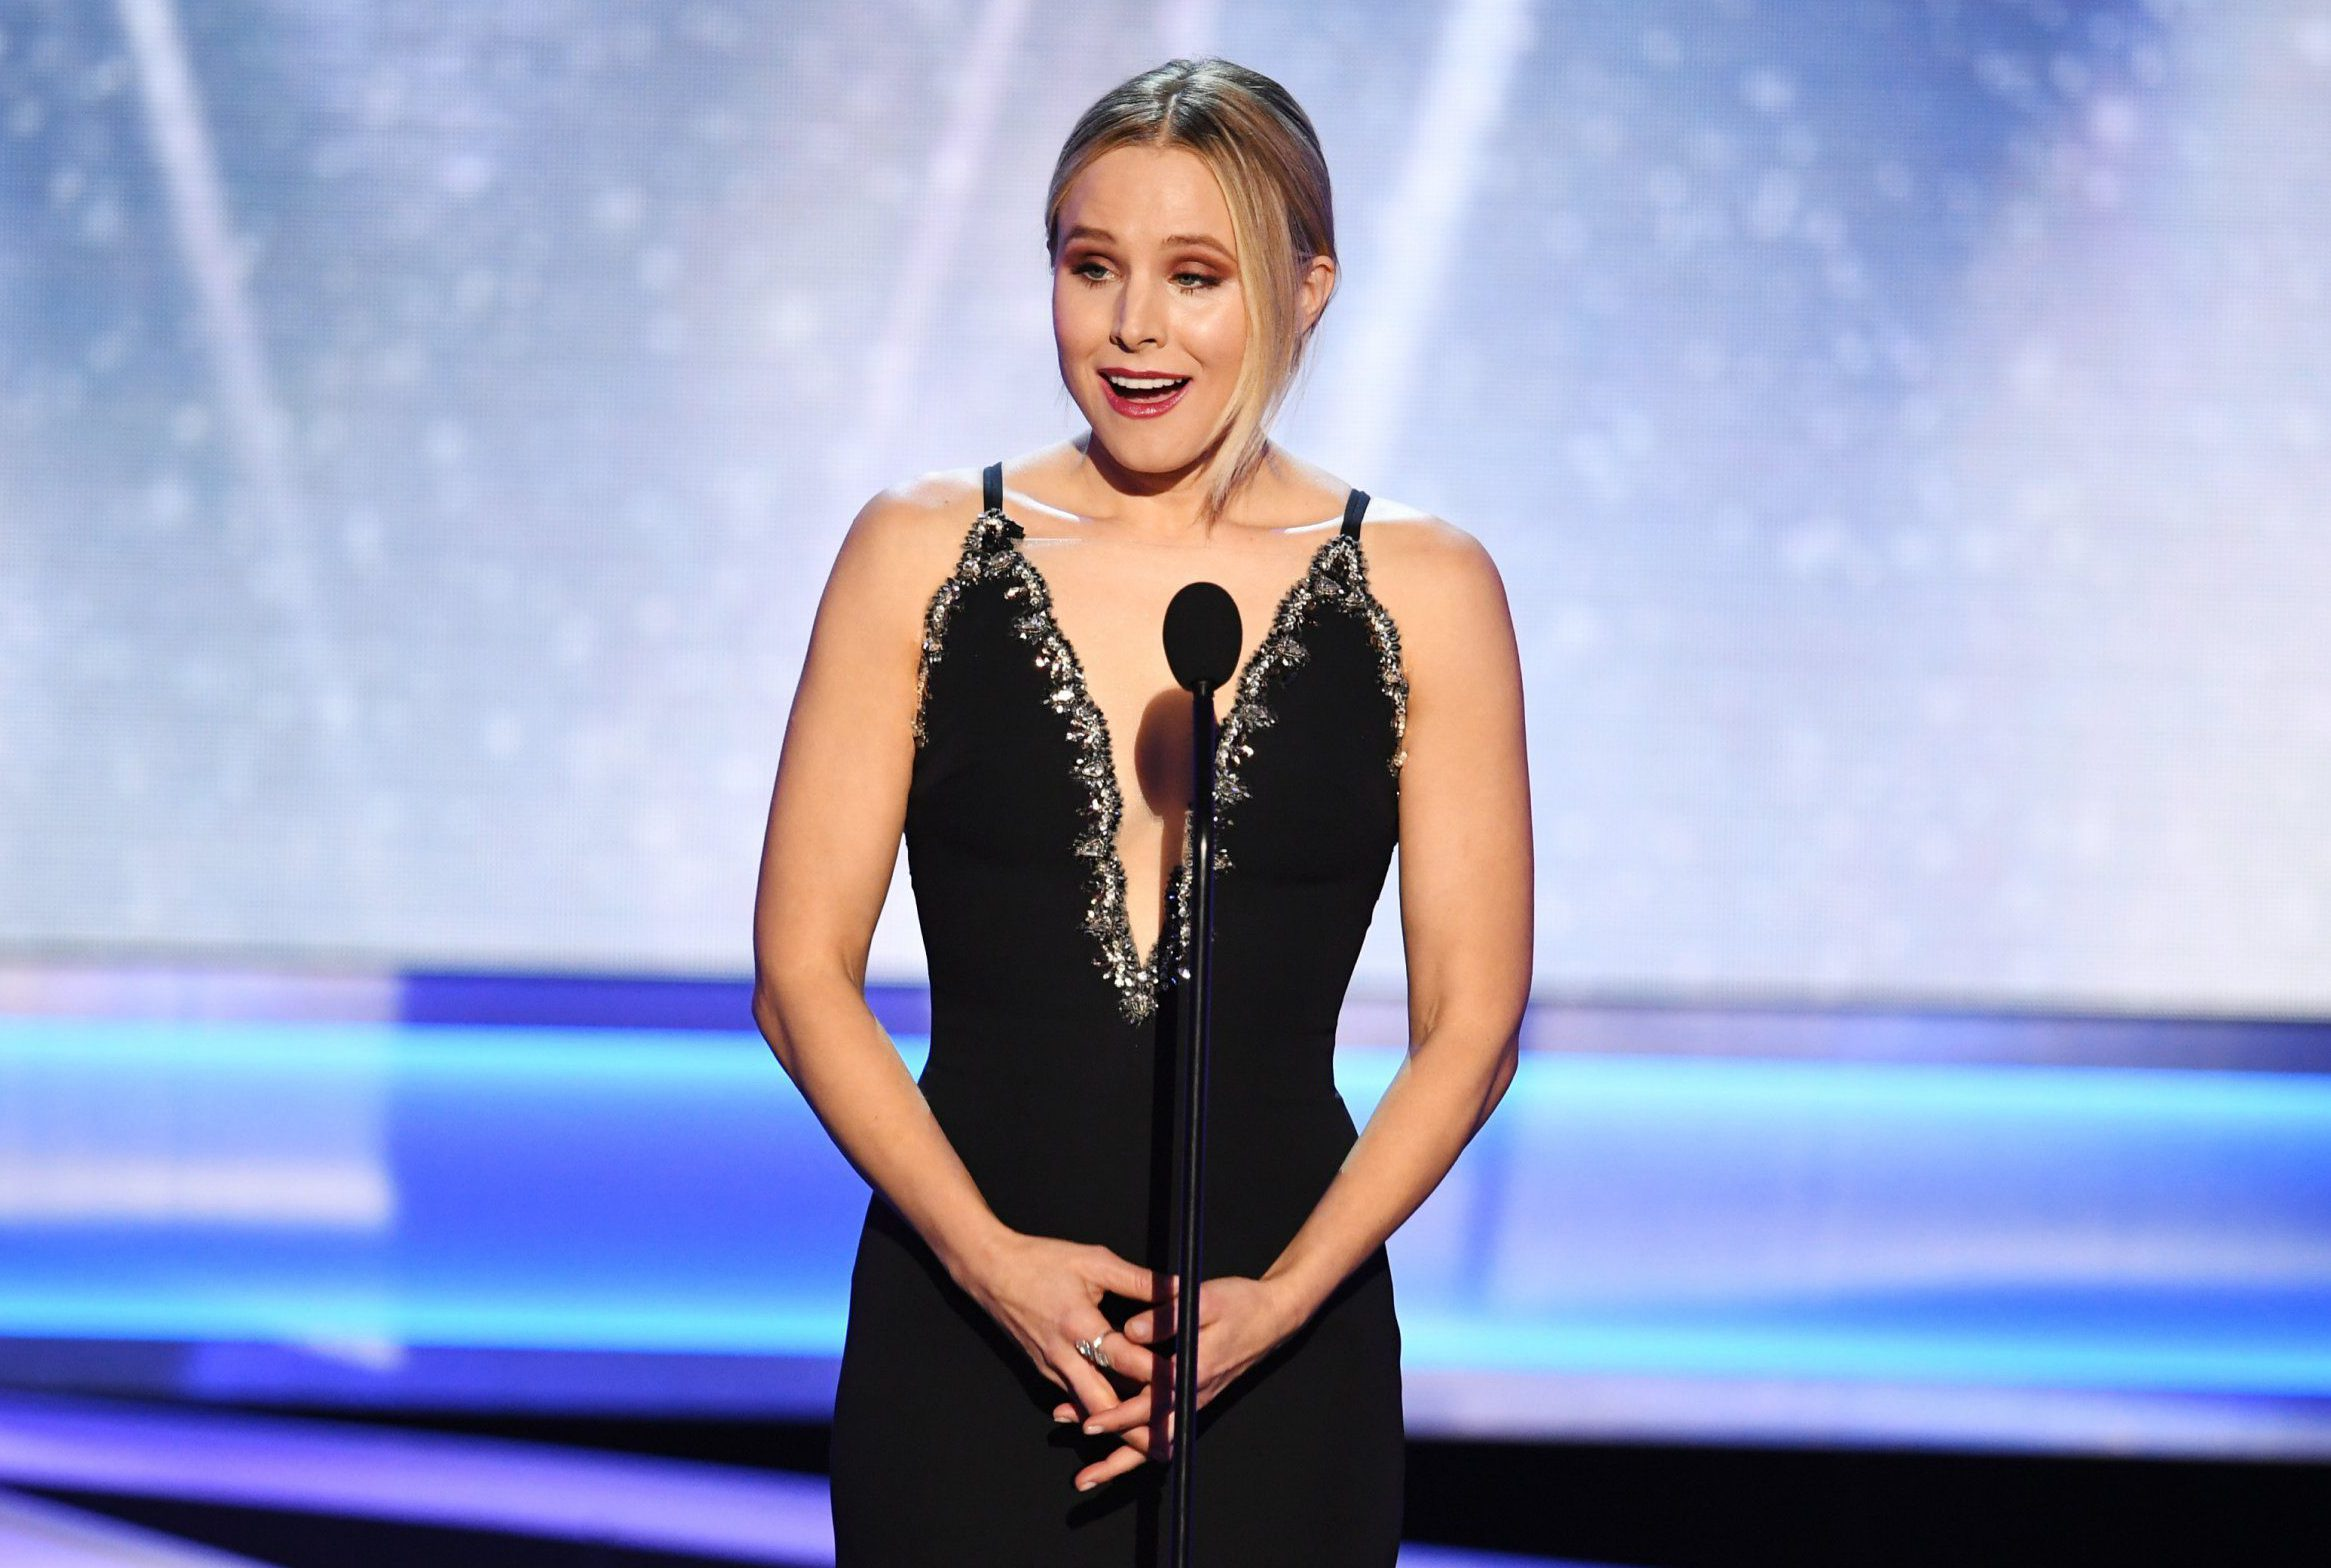 Kristen Bell throws shade at Melania Trump in her SAG Awards opening dialogue